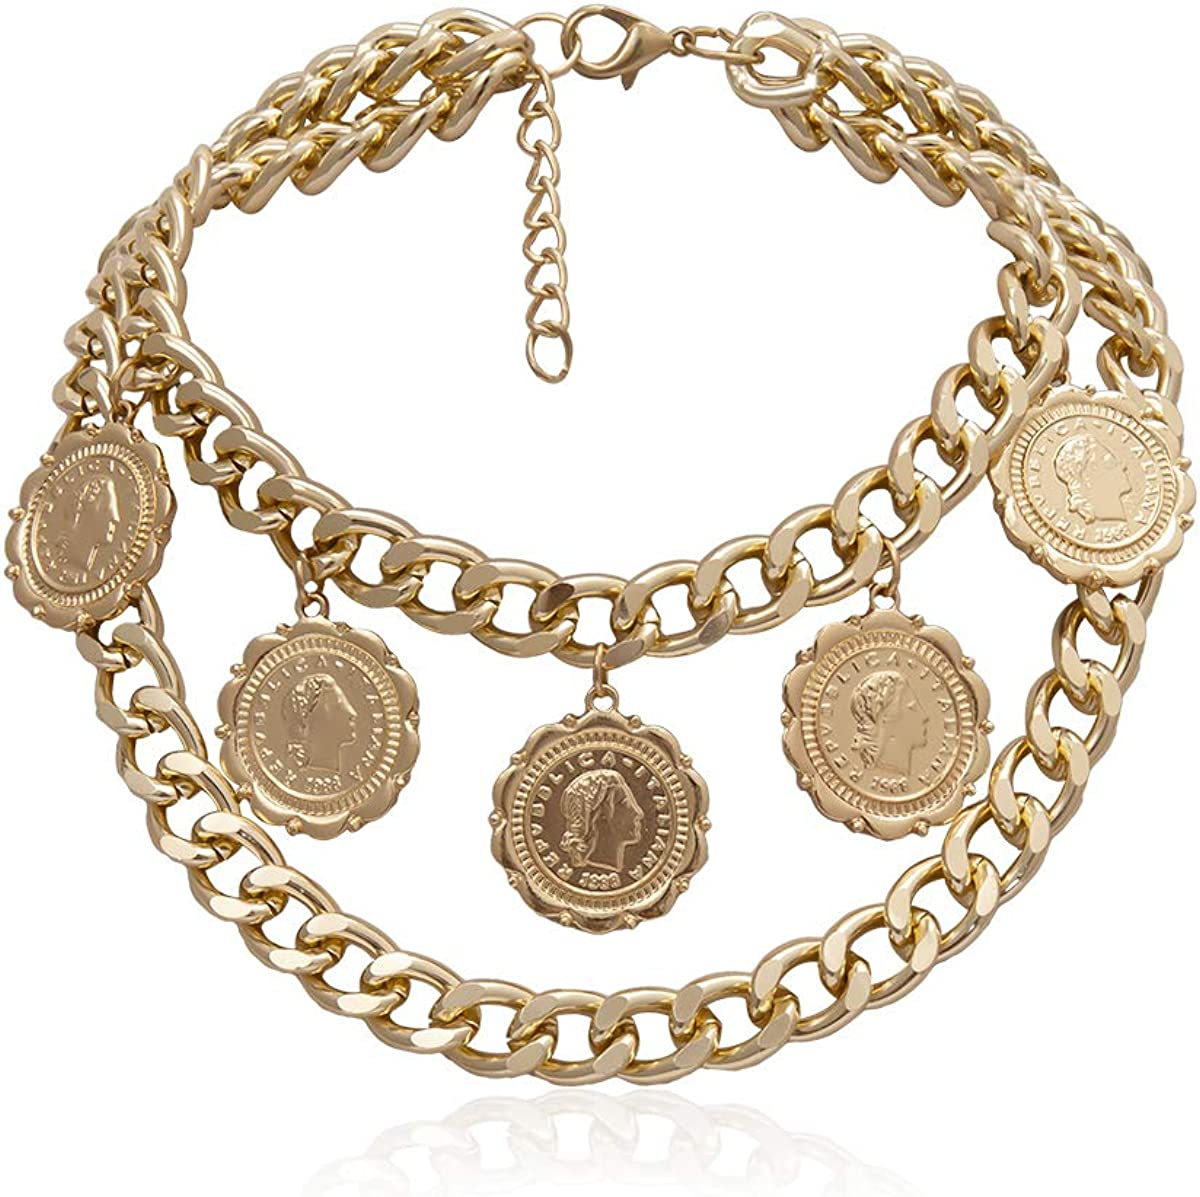 N  A Punk Style Layered Coin Pendant Choker Necklaces for Women Vintage Portrait Carved Pendants Cute Collar Jewelry